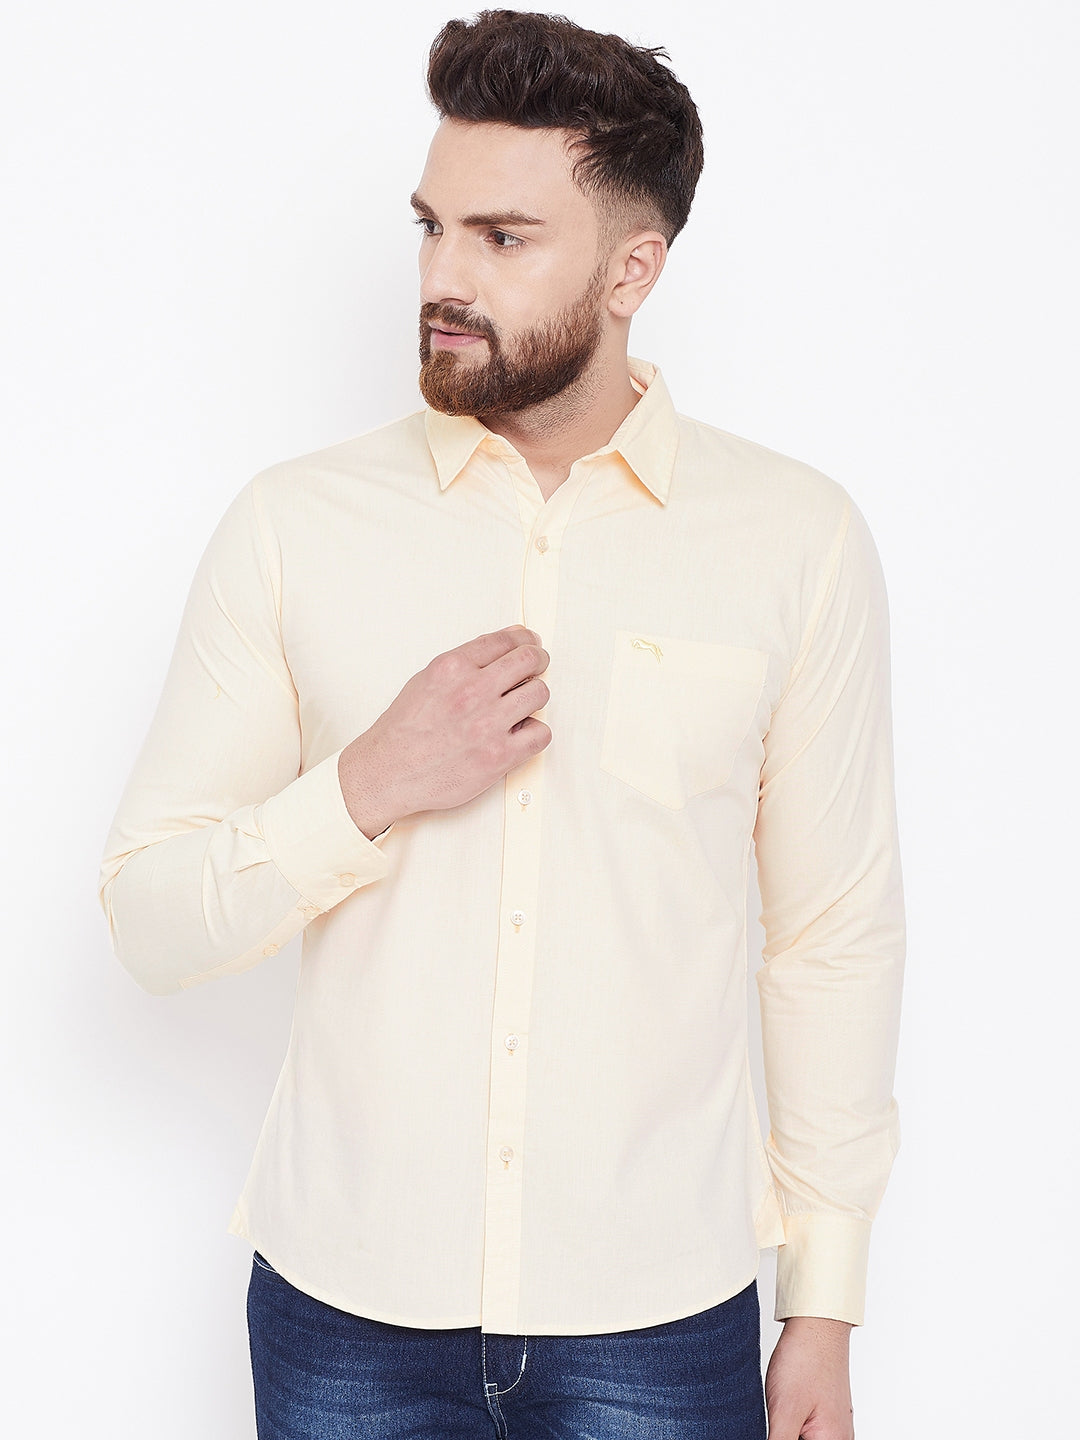 JUMP USA Men Cream Solid Regular Fit Casual Shirts